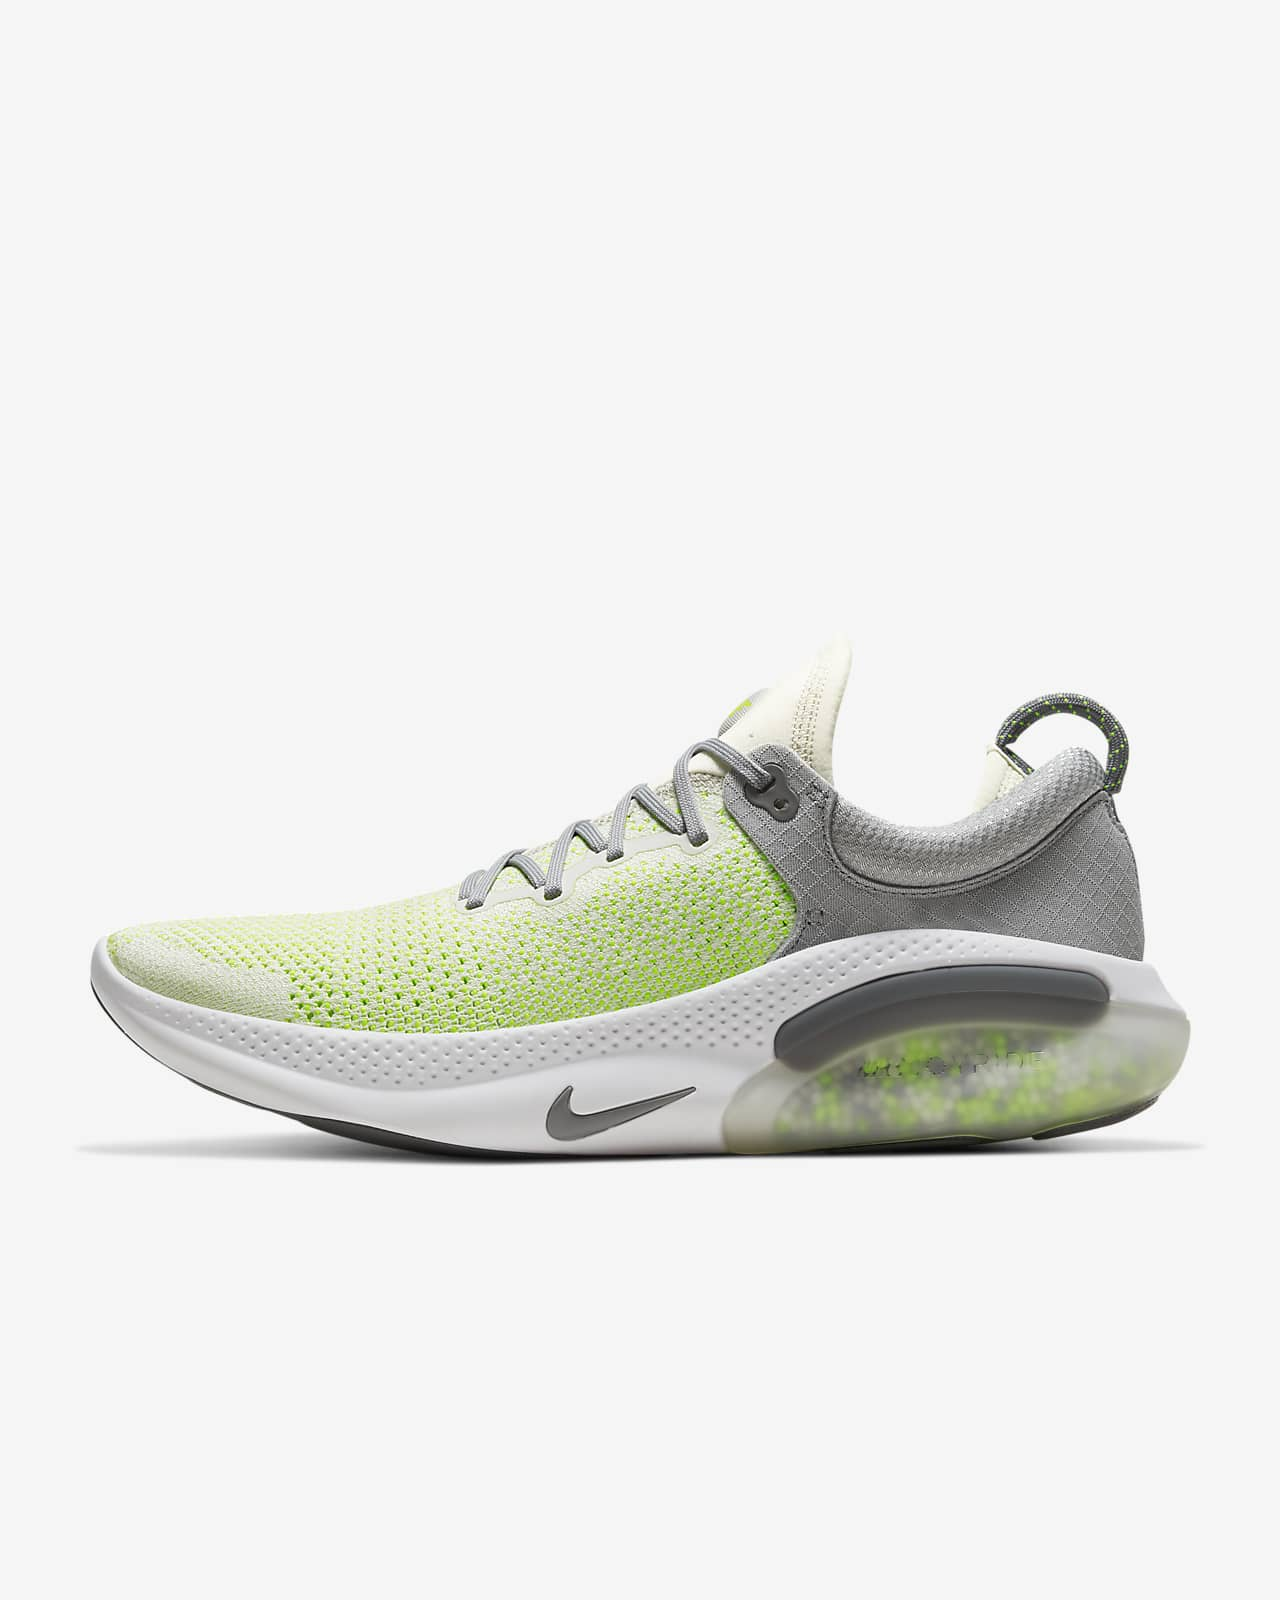 flynit nike chaussure